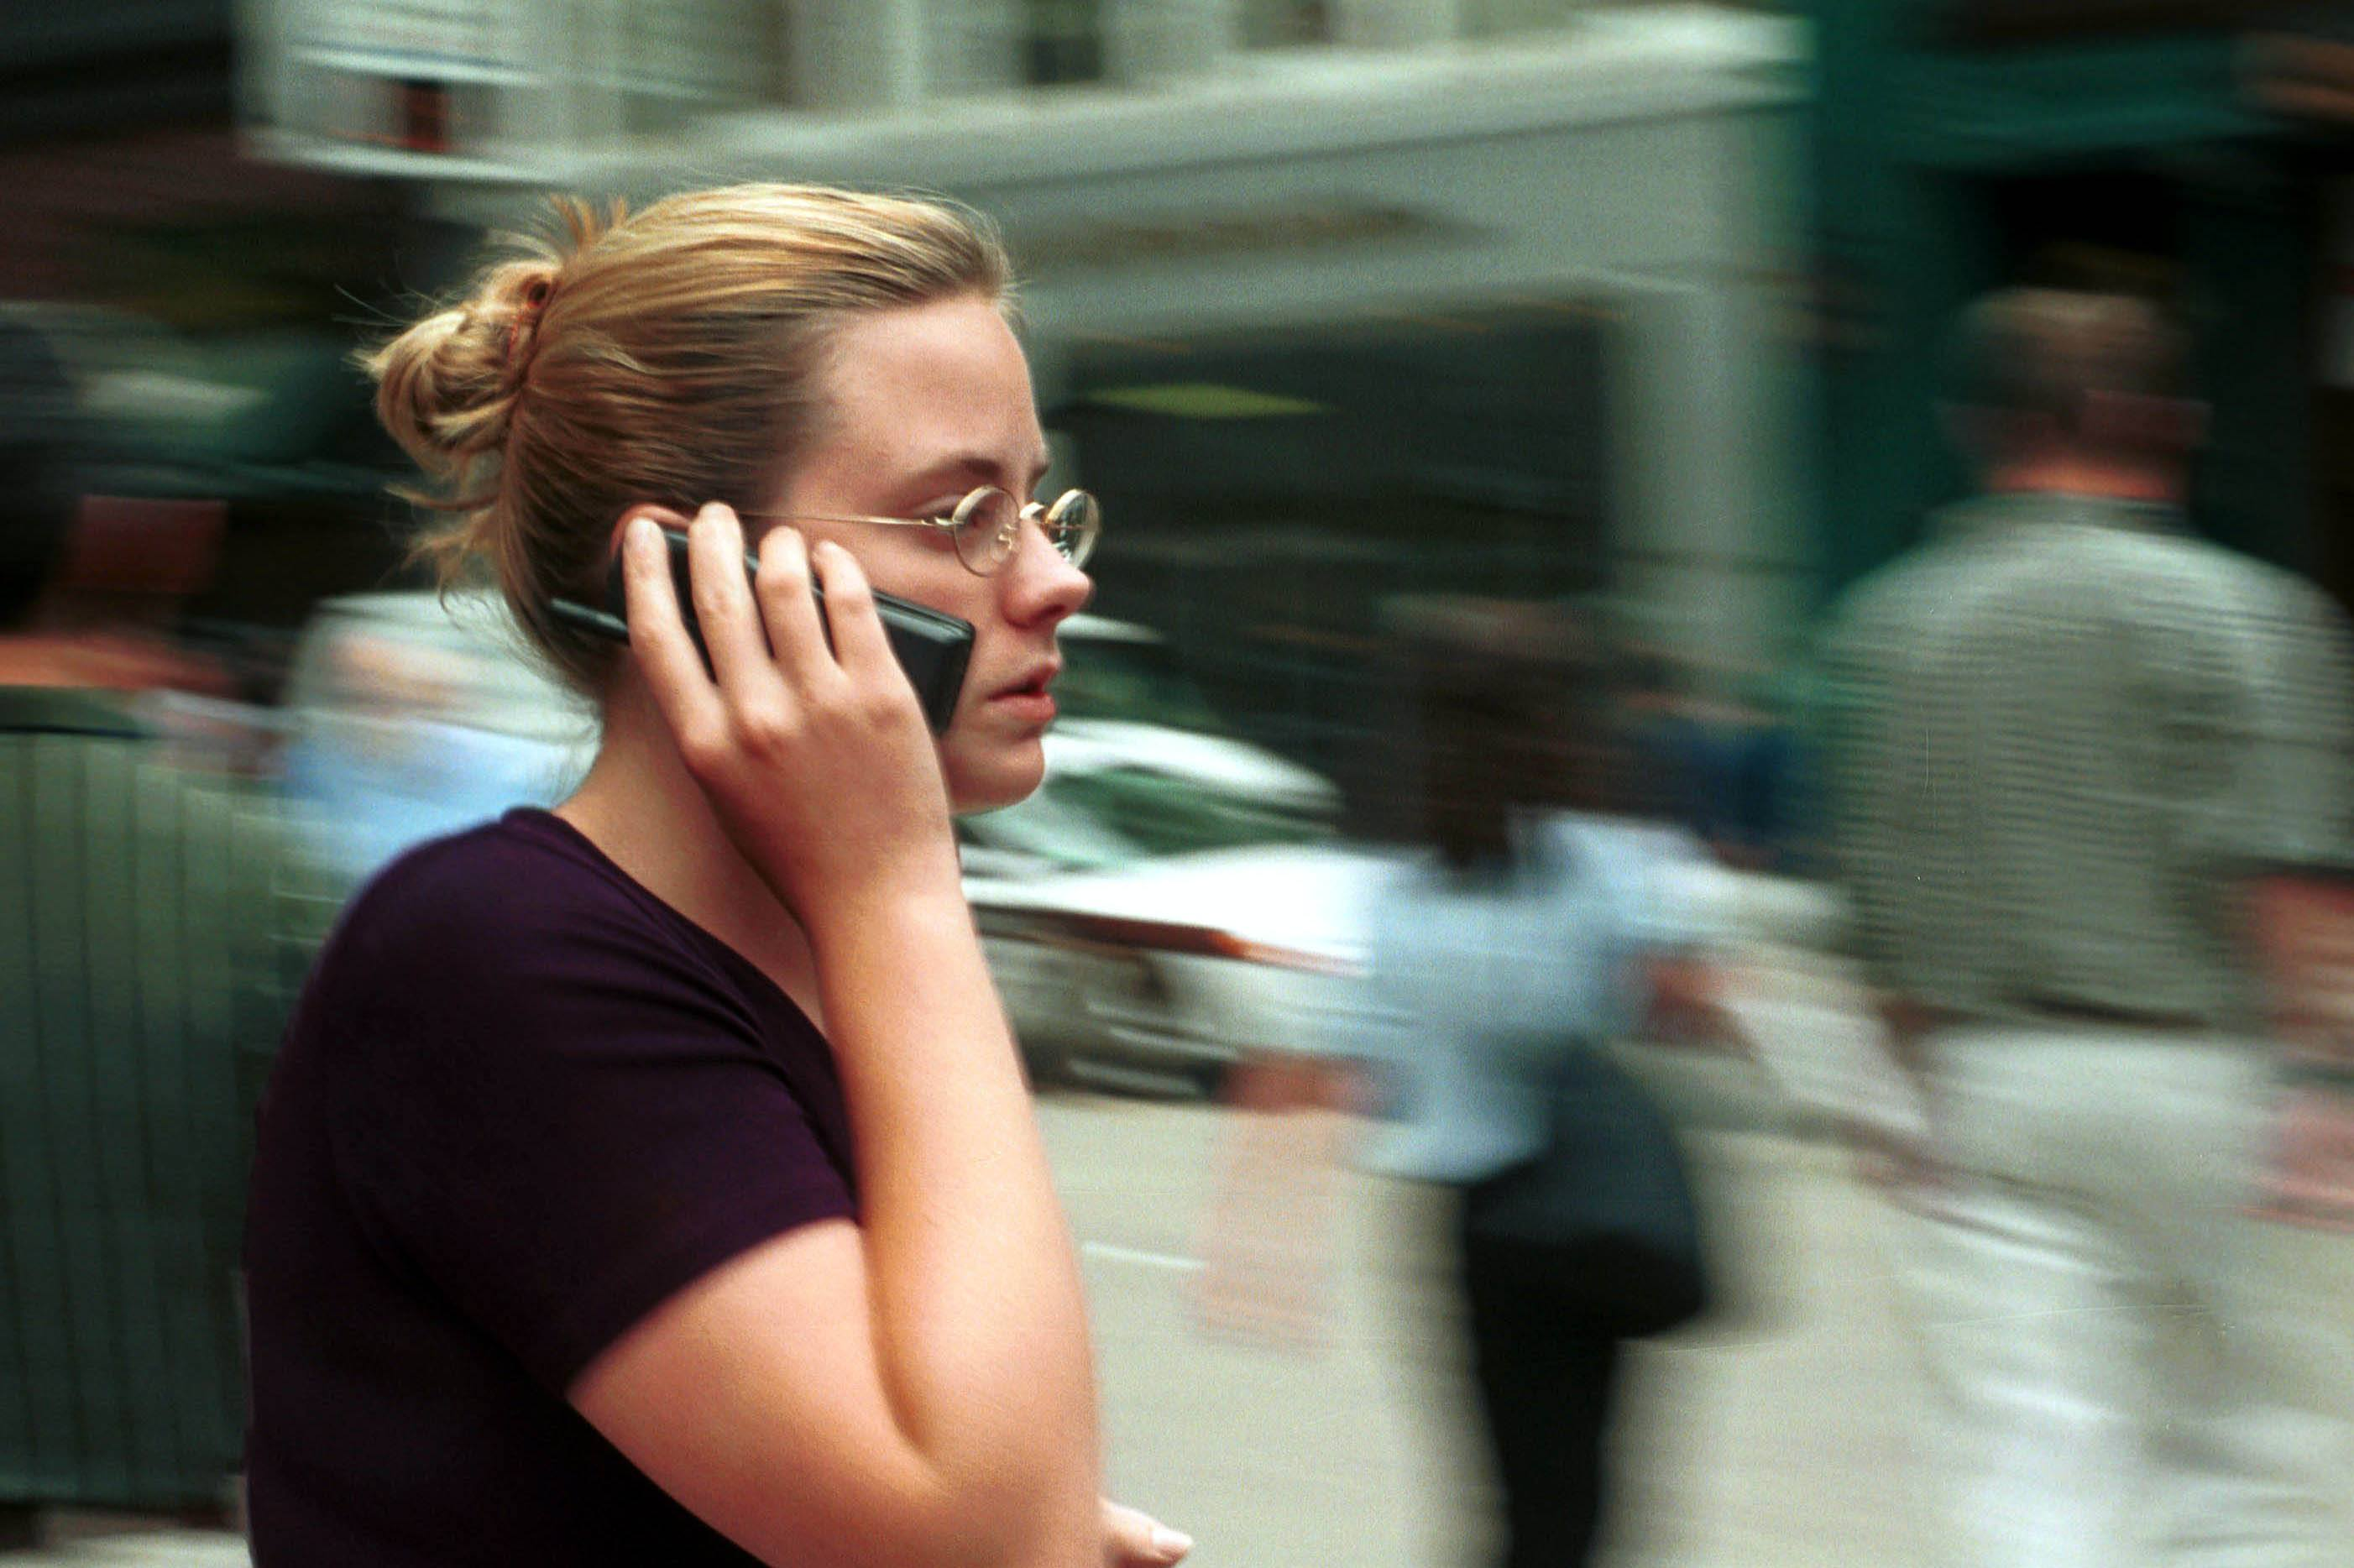 A woman uses her cell phone while walking down the street in Boston MA